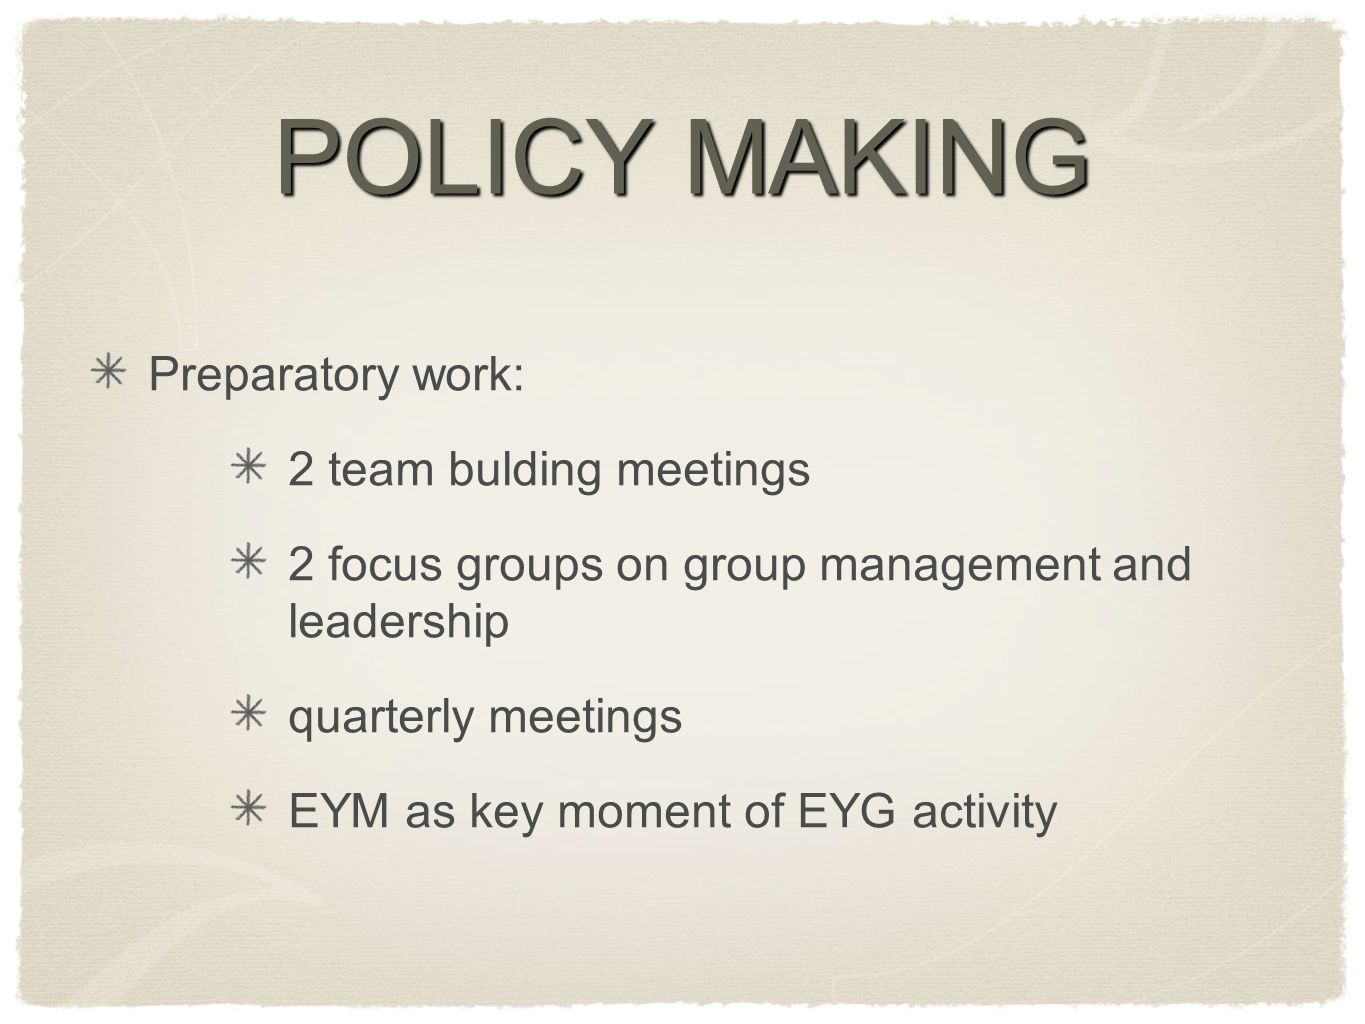 POLICY MAKING Preparatory work: 2 team bulding meetings 2 focus groups on group management and leadership quarterly meetings EYM as key moment of EYG